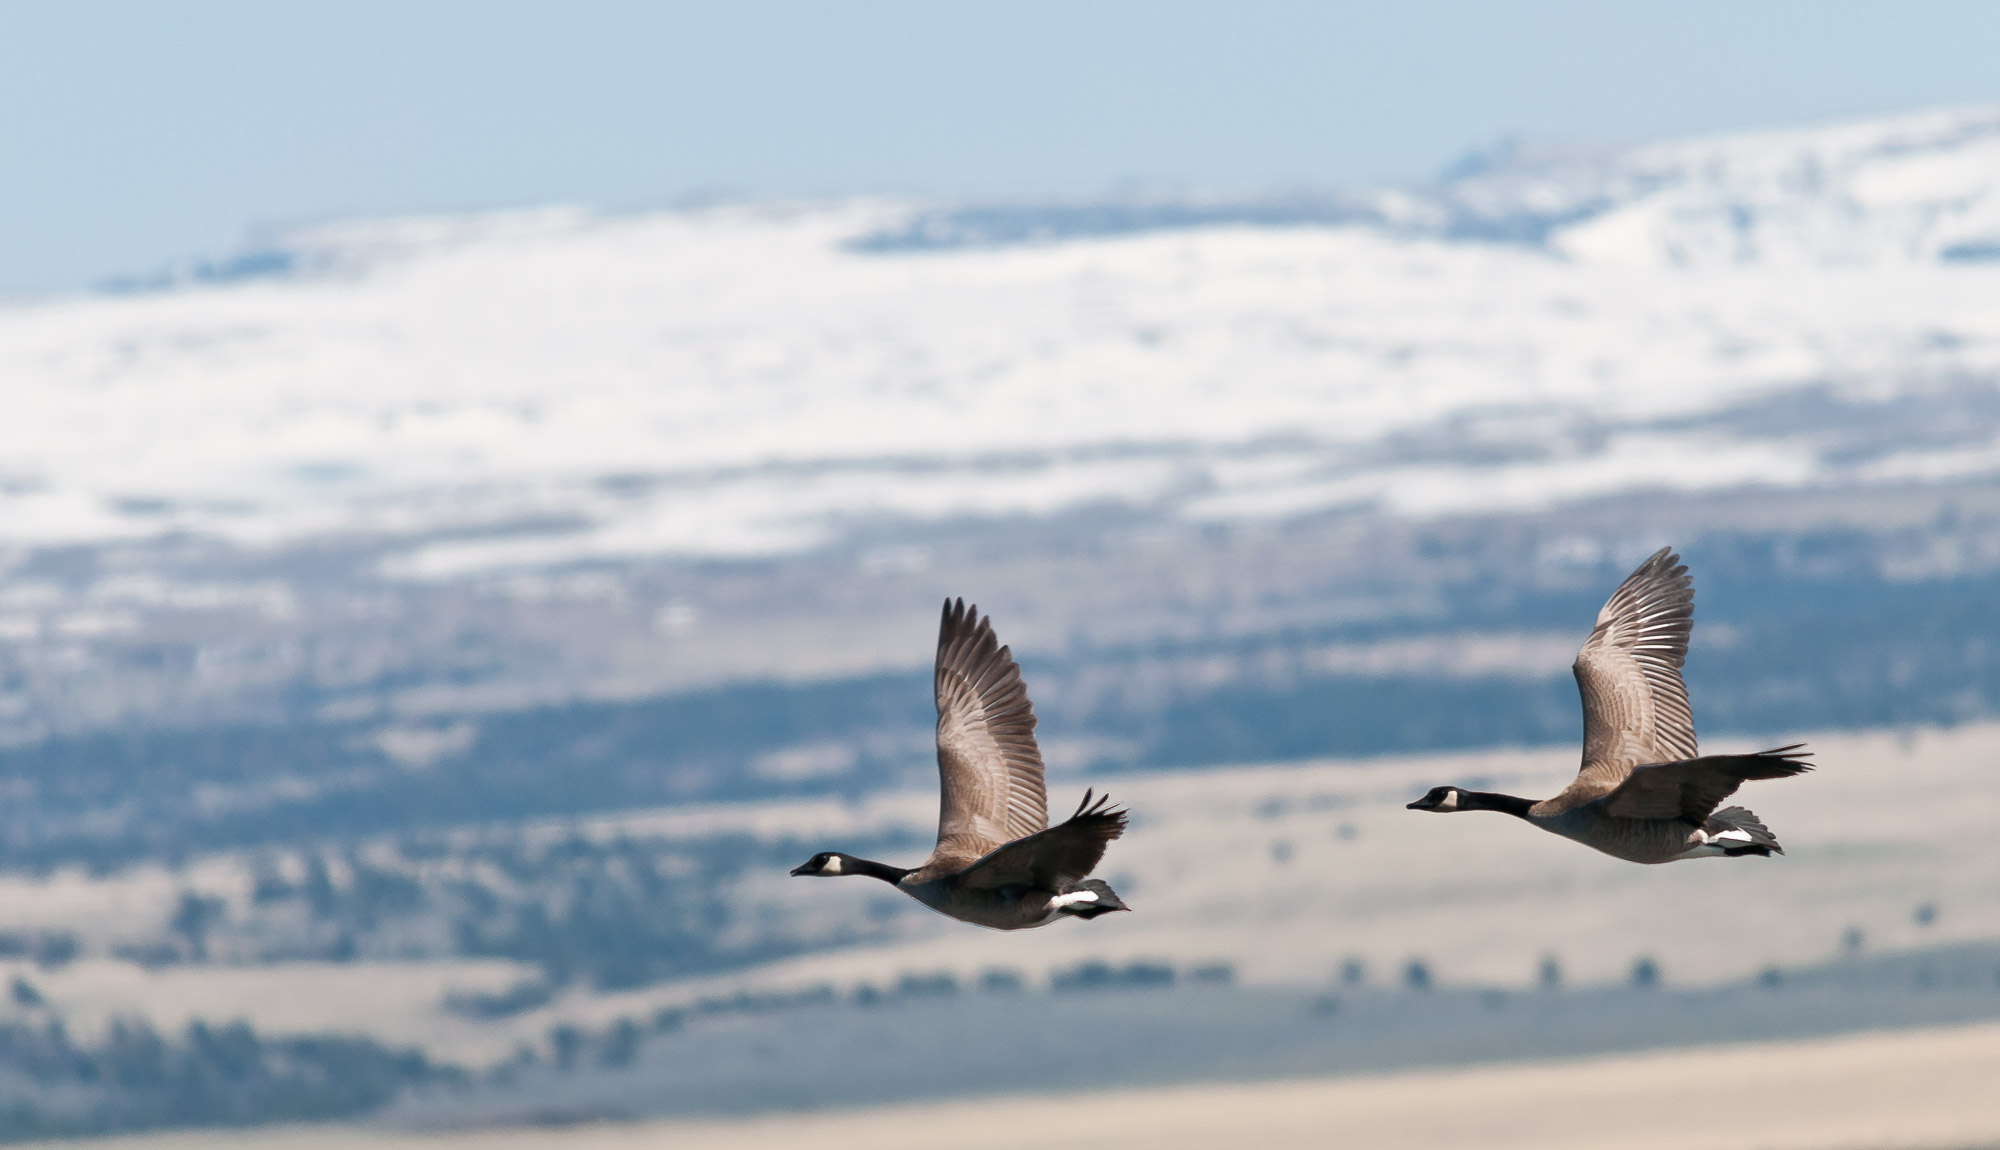 Canadian Geese - near Steens Mountain, Oregon